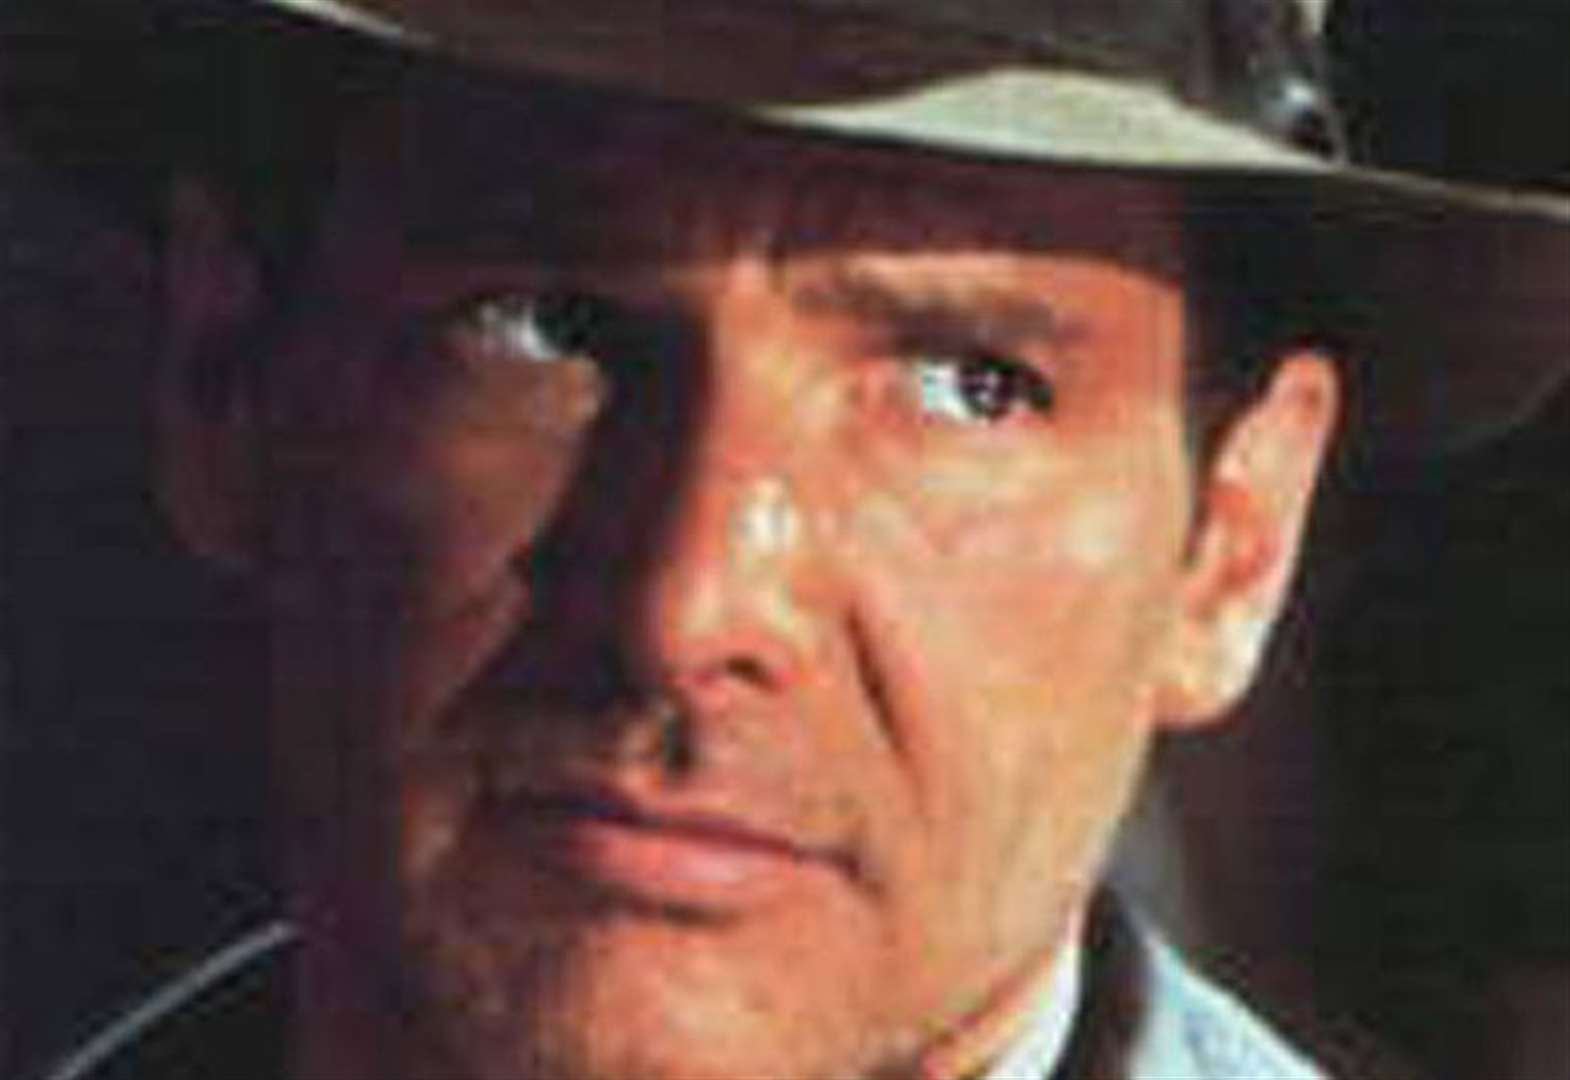 Indiana Jones to ride back onto the big screen